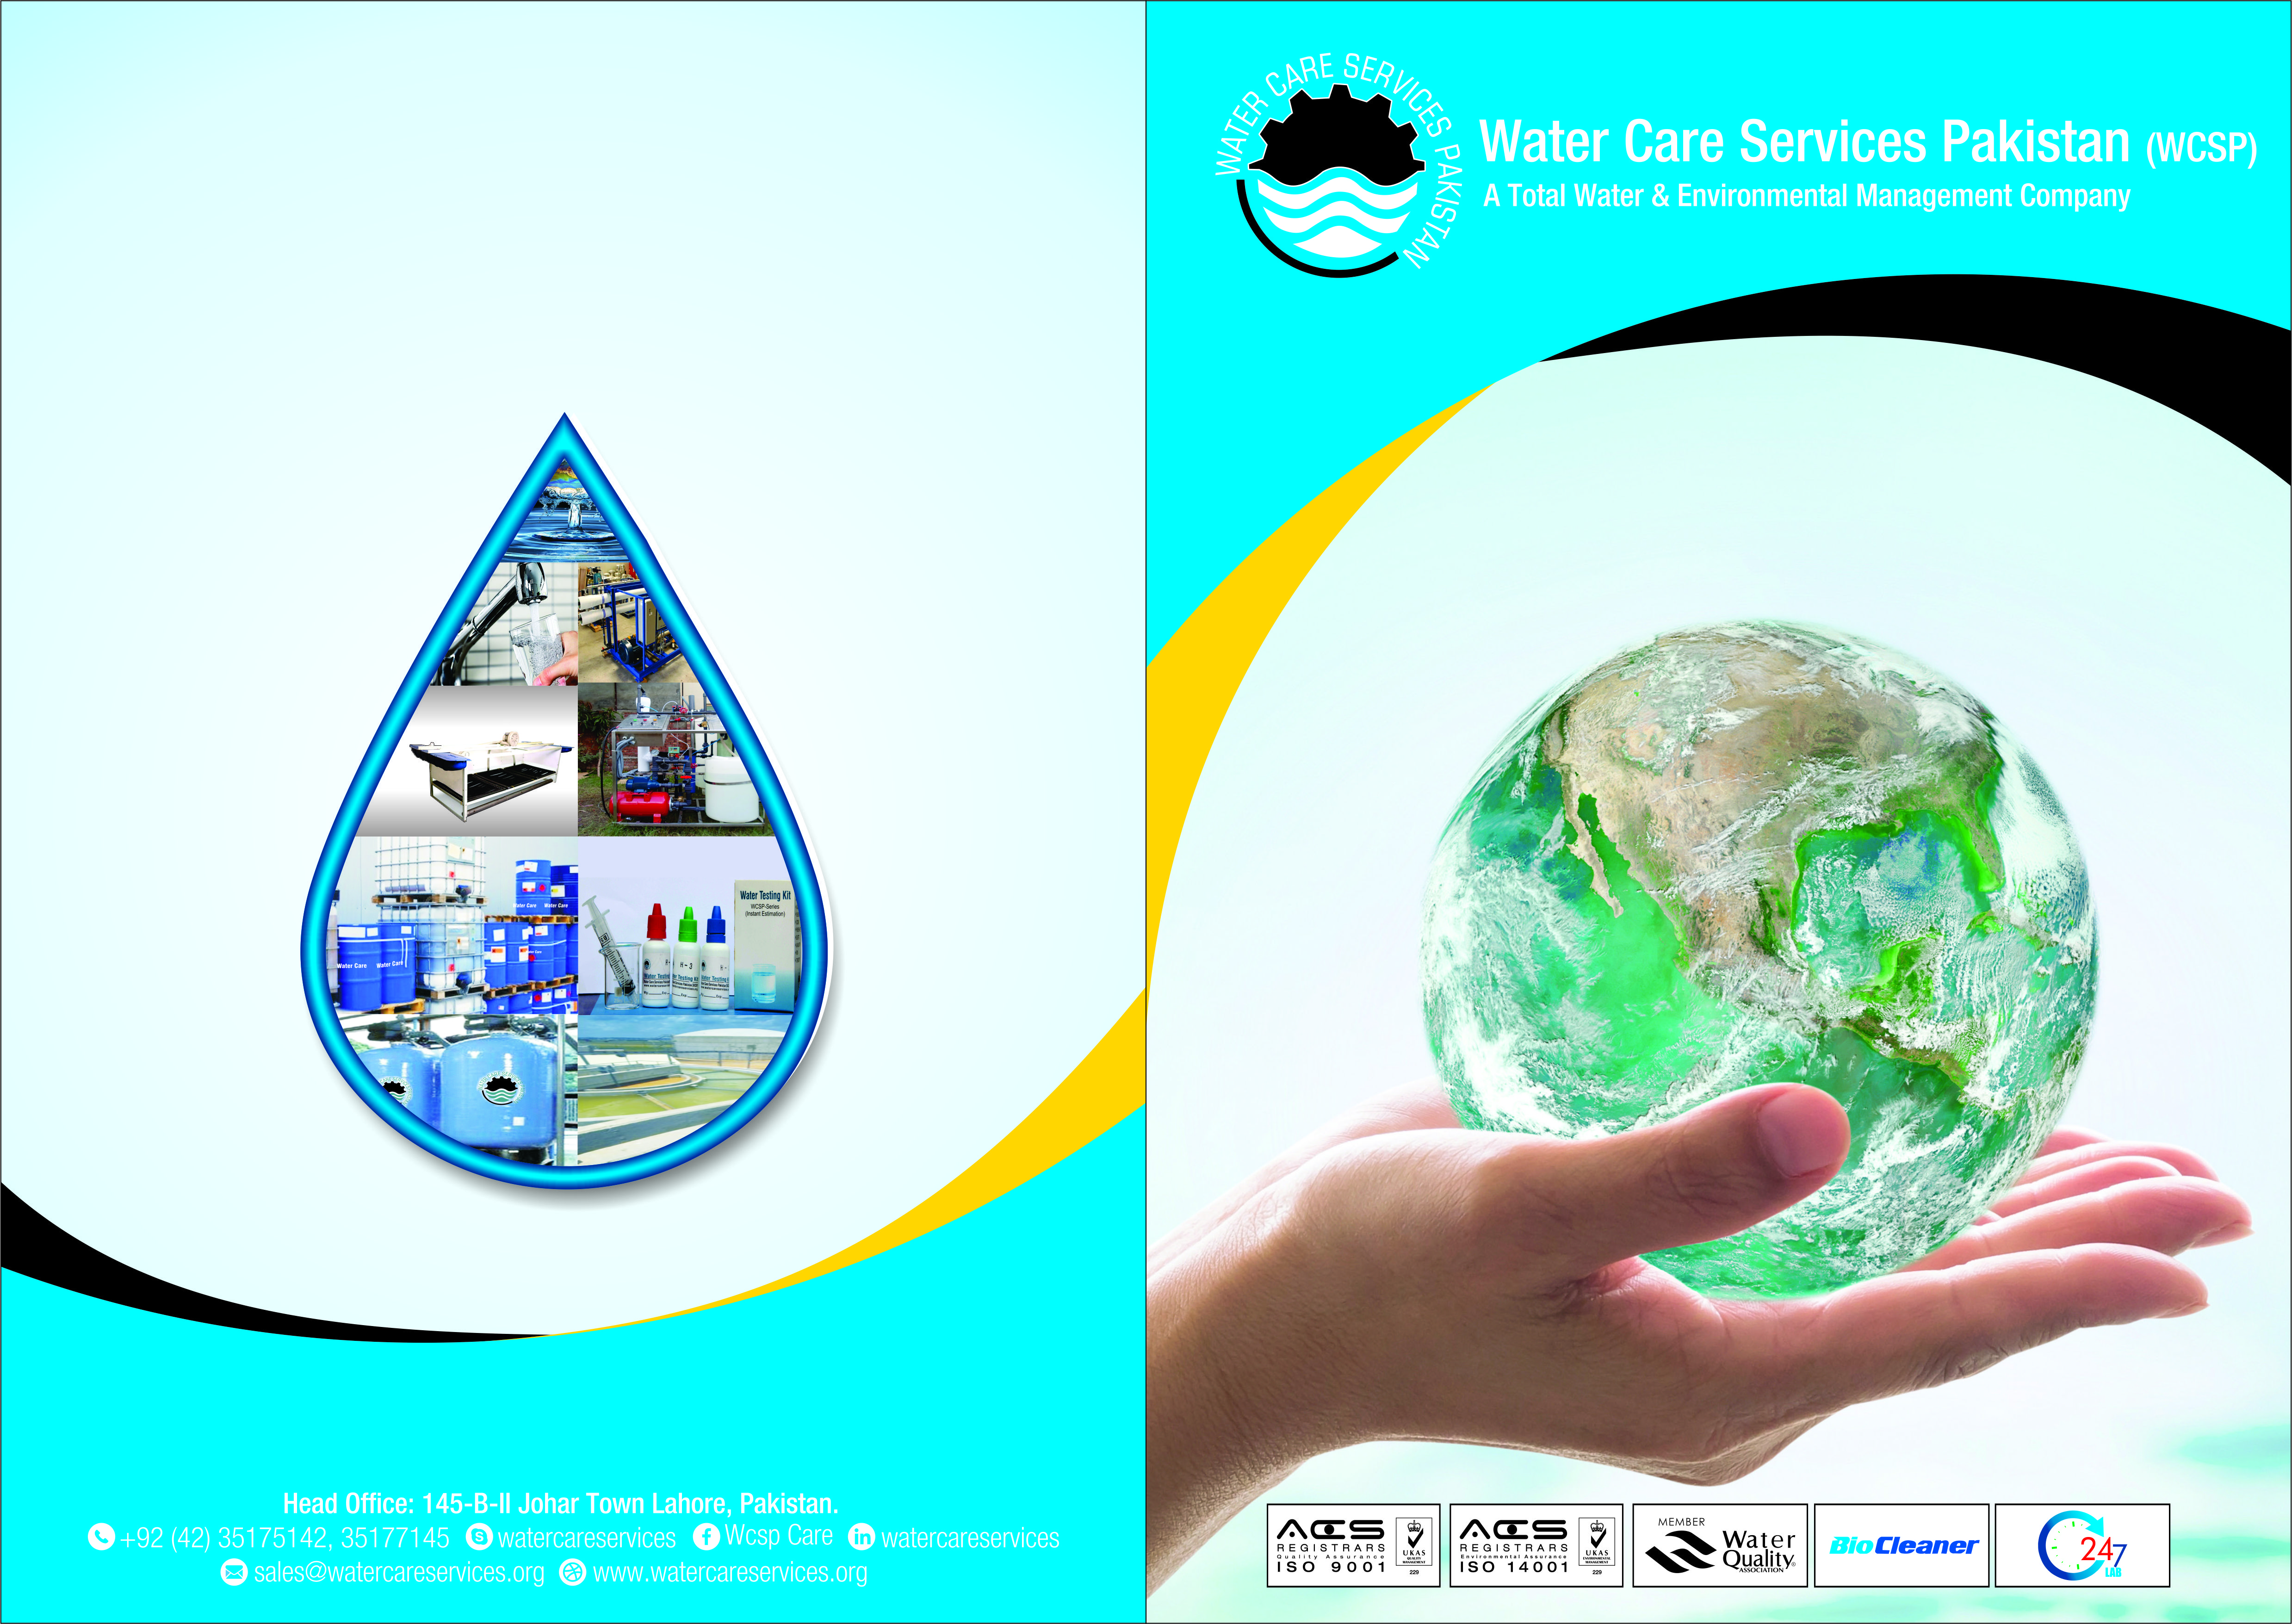 http://www.pakpositions.com/company/water-care-services